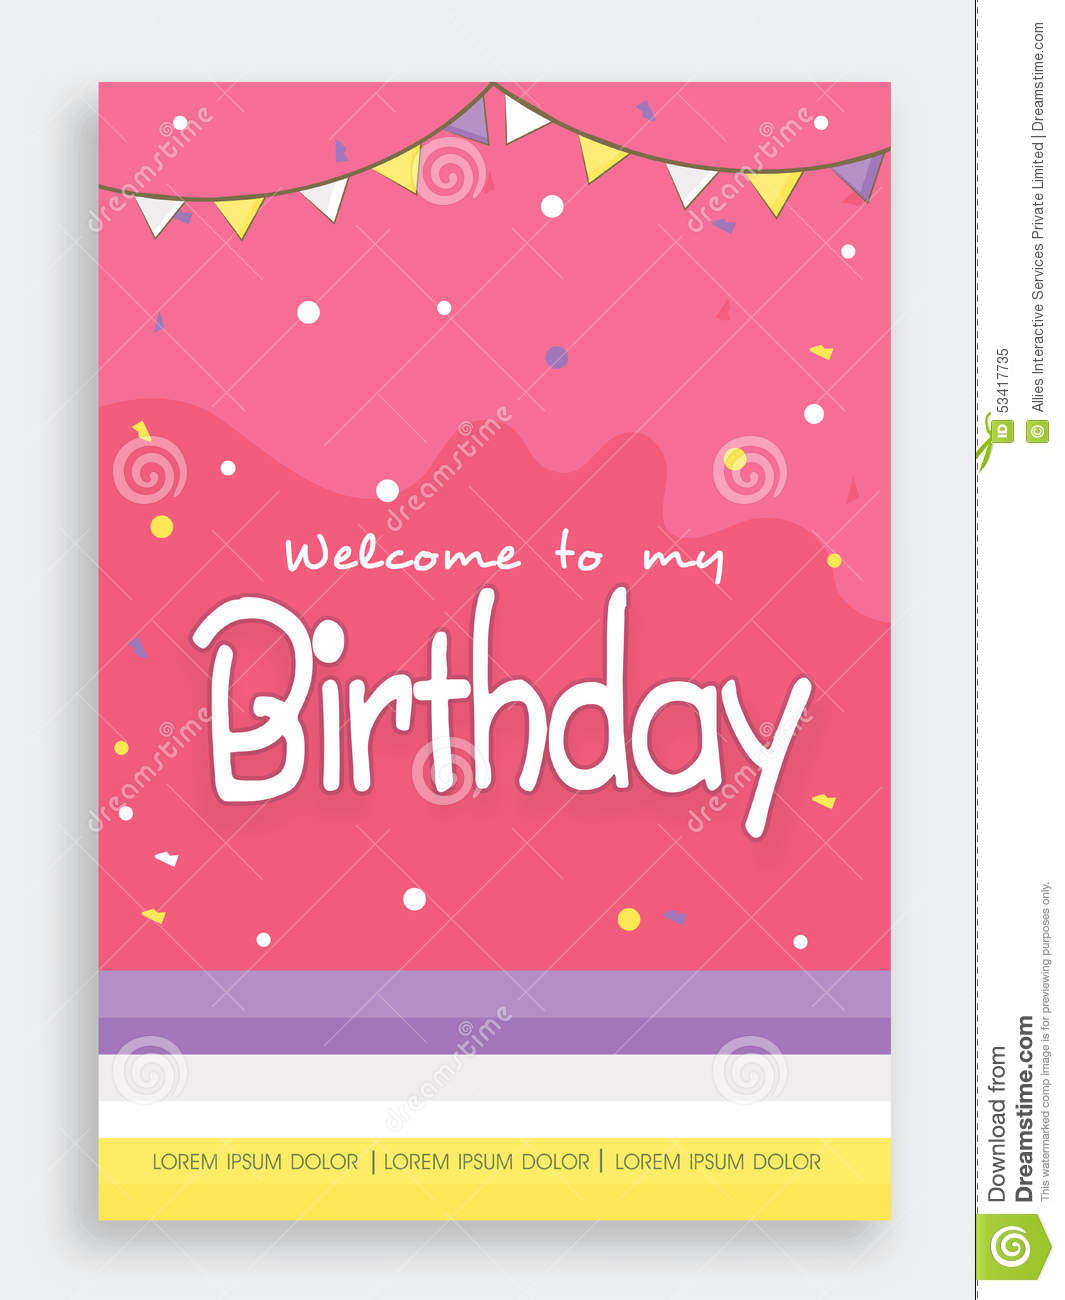 Invitation Card Design For Birthday Party. Stock Image - Image of ...